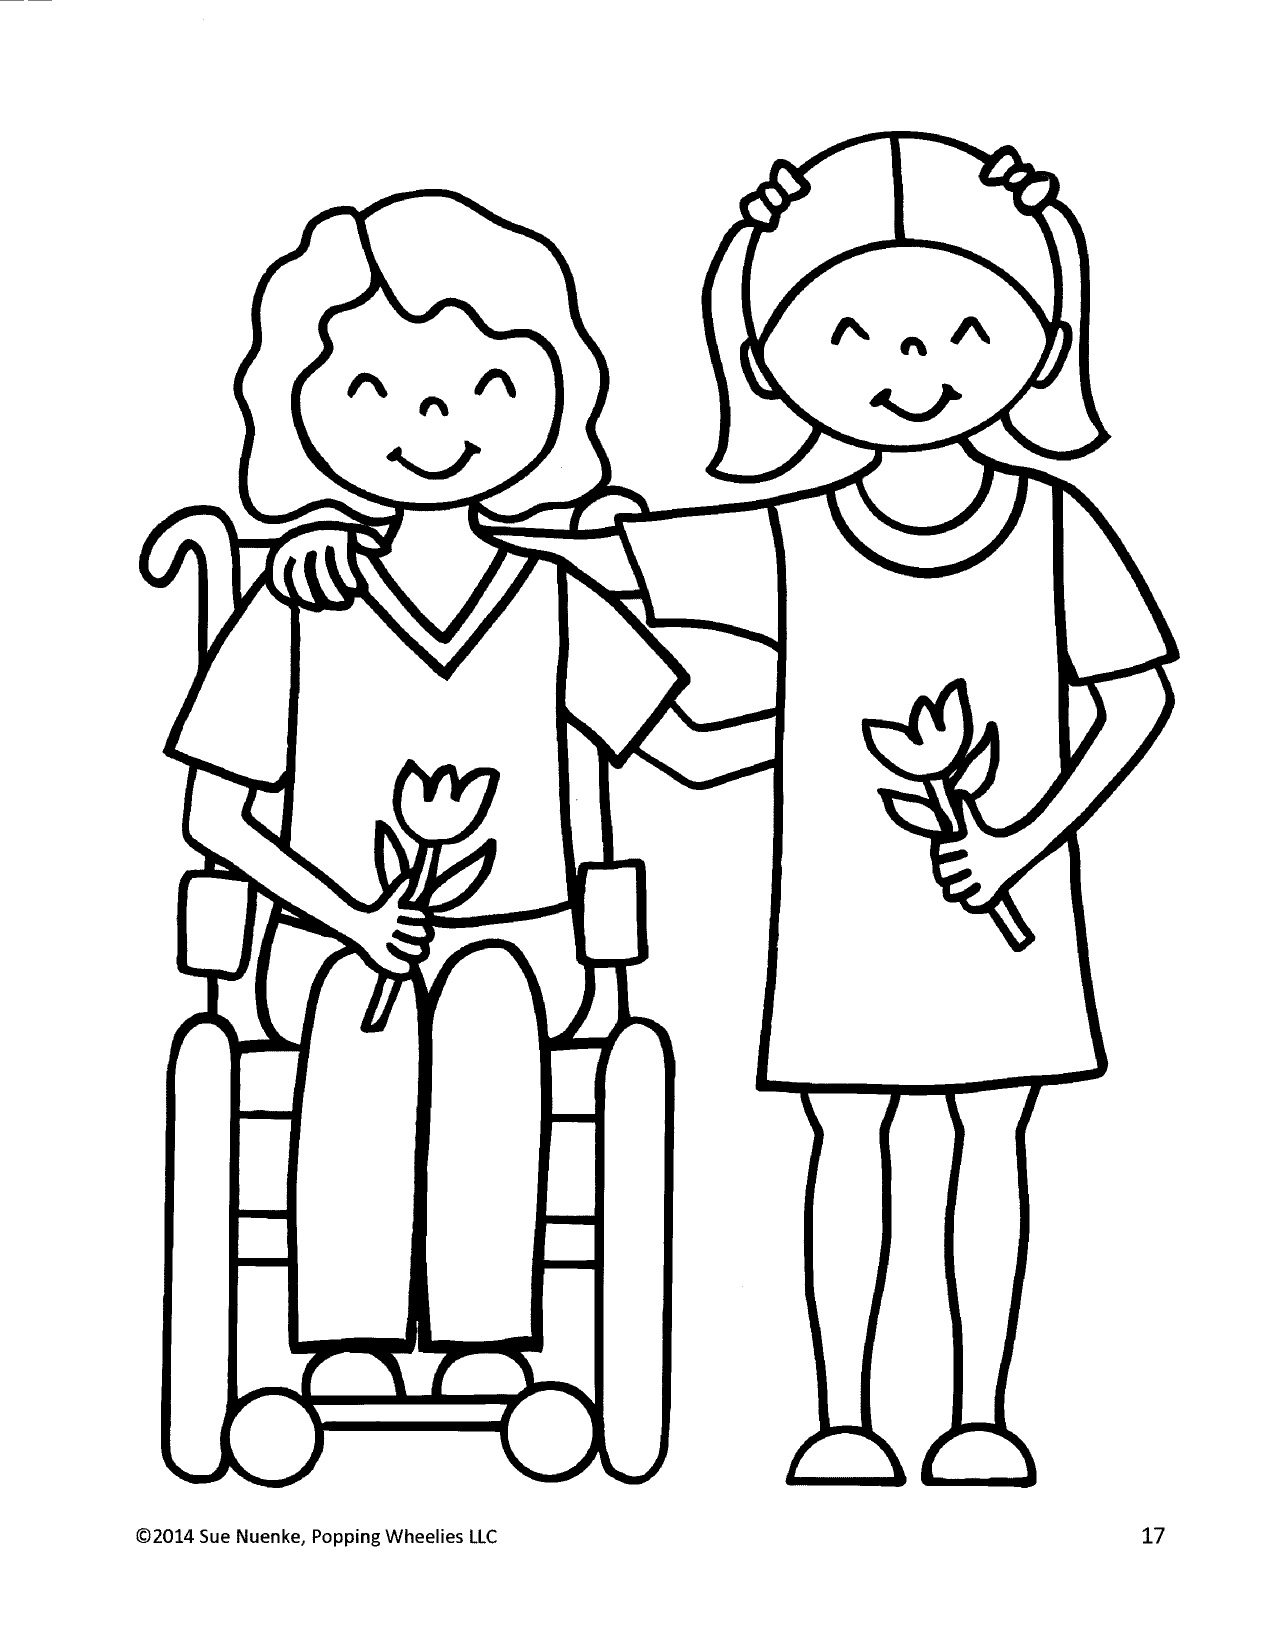 special needs coloring pages - photo#16